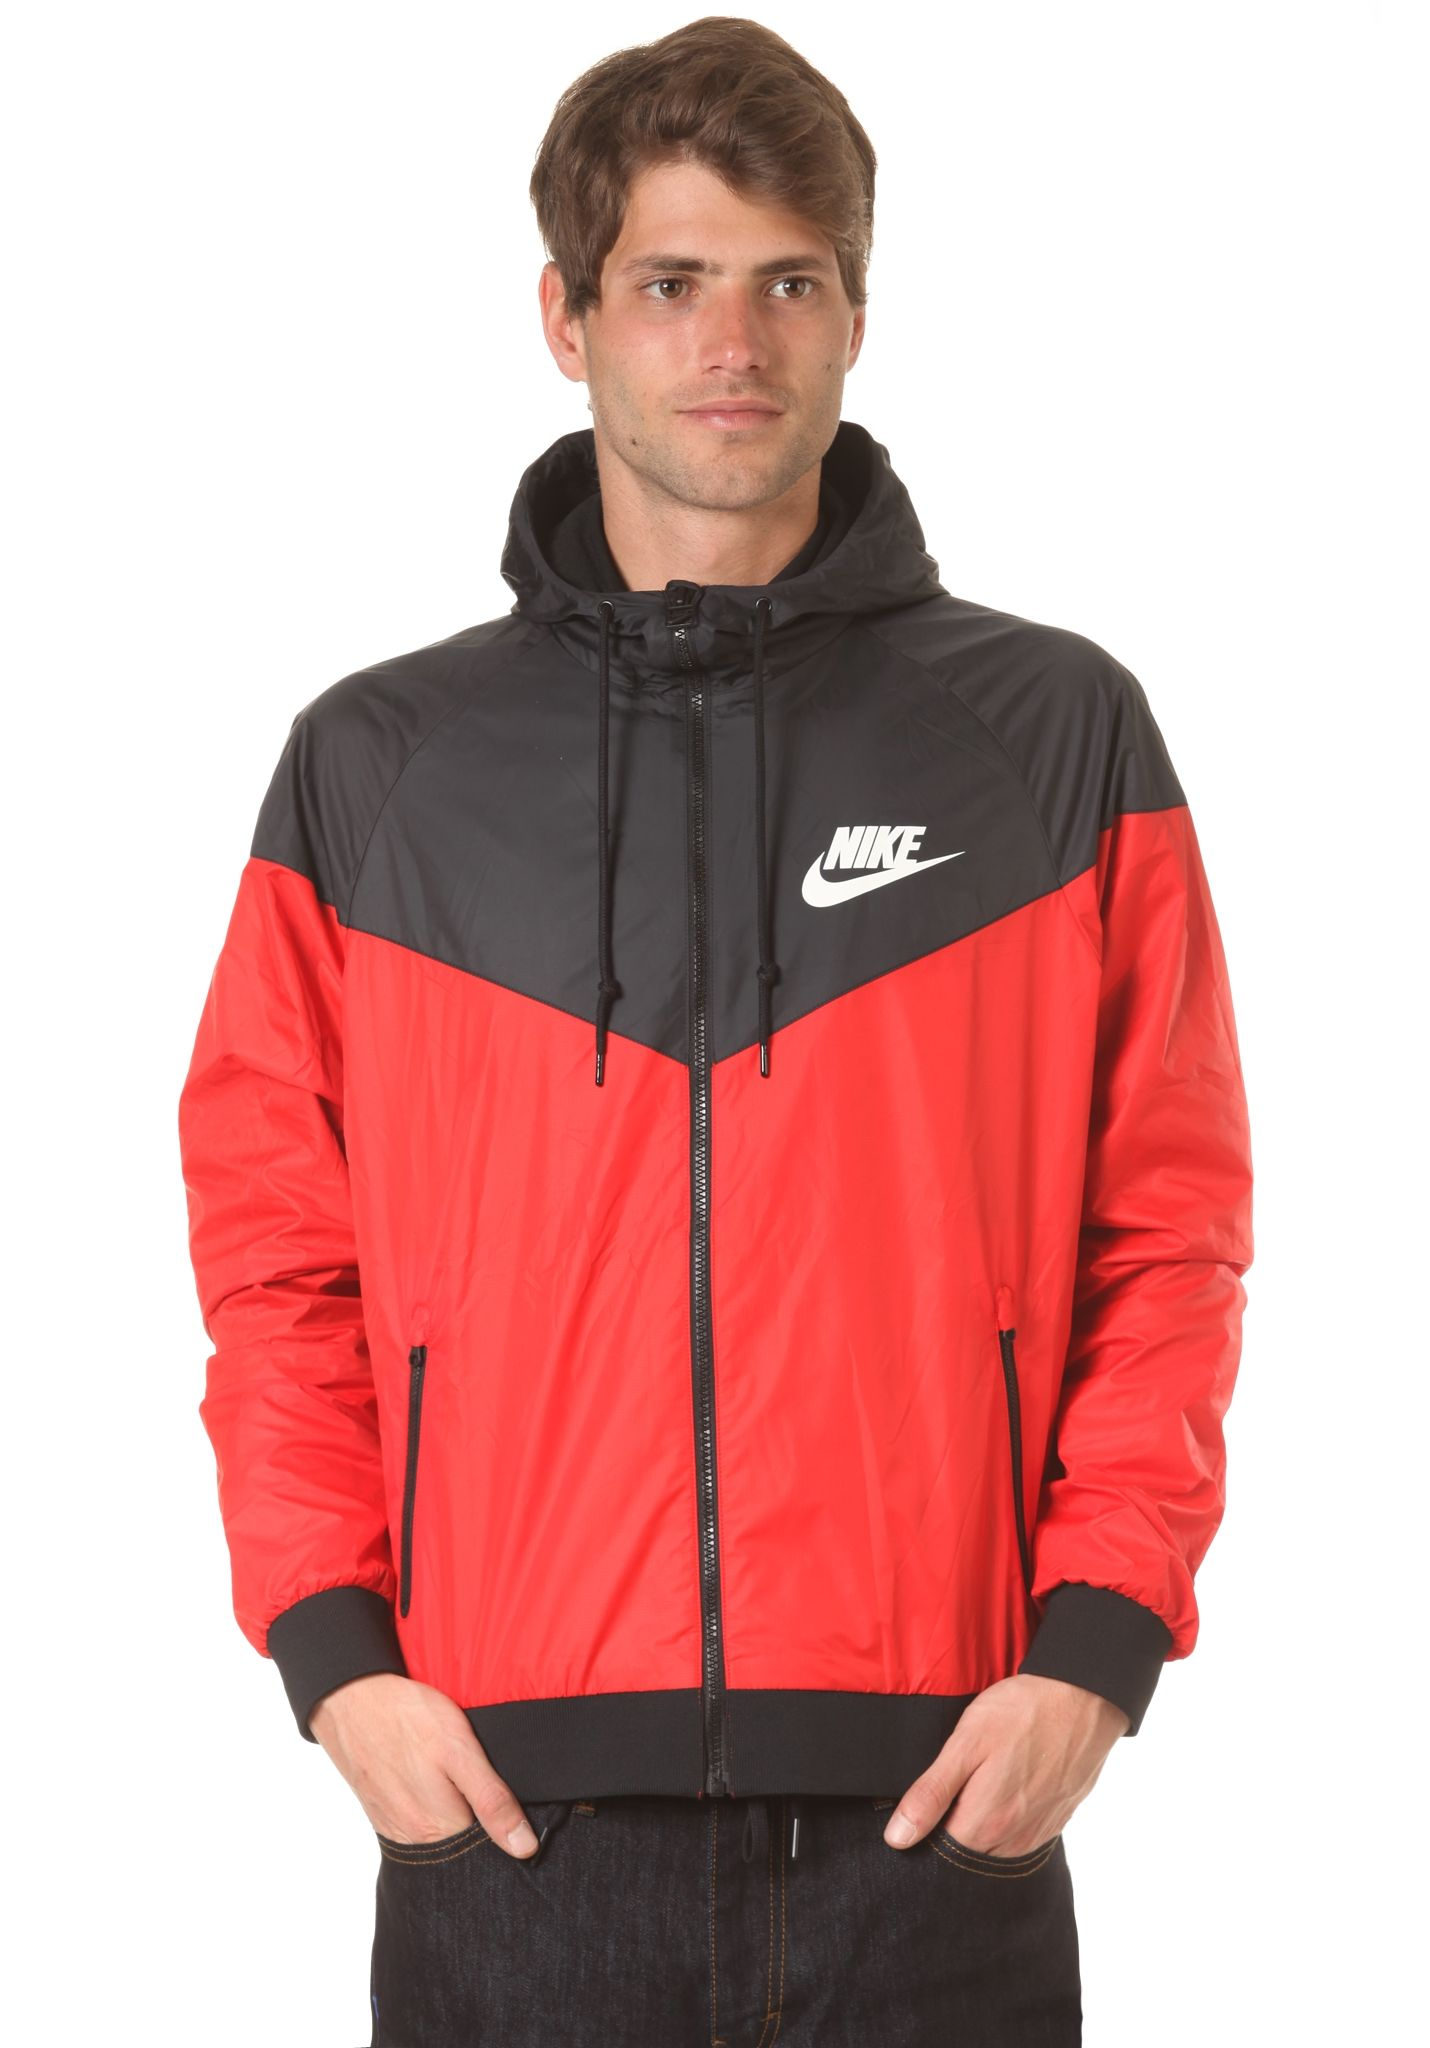 NIKE SPORTSWEAR Windrunner Jacket - Jacket for Men - Red - Planet Sports f27334426